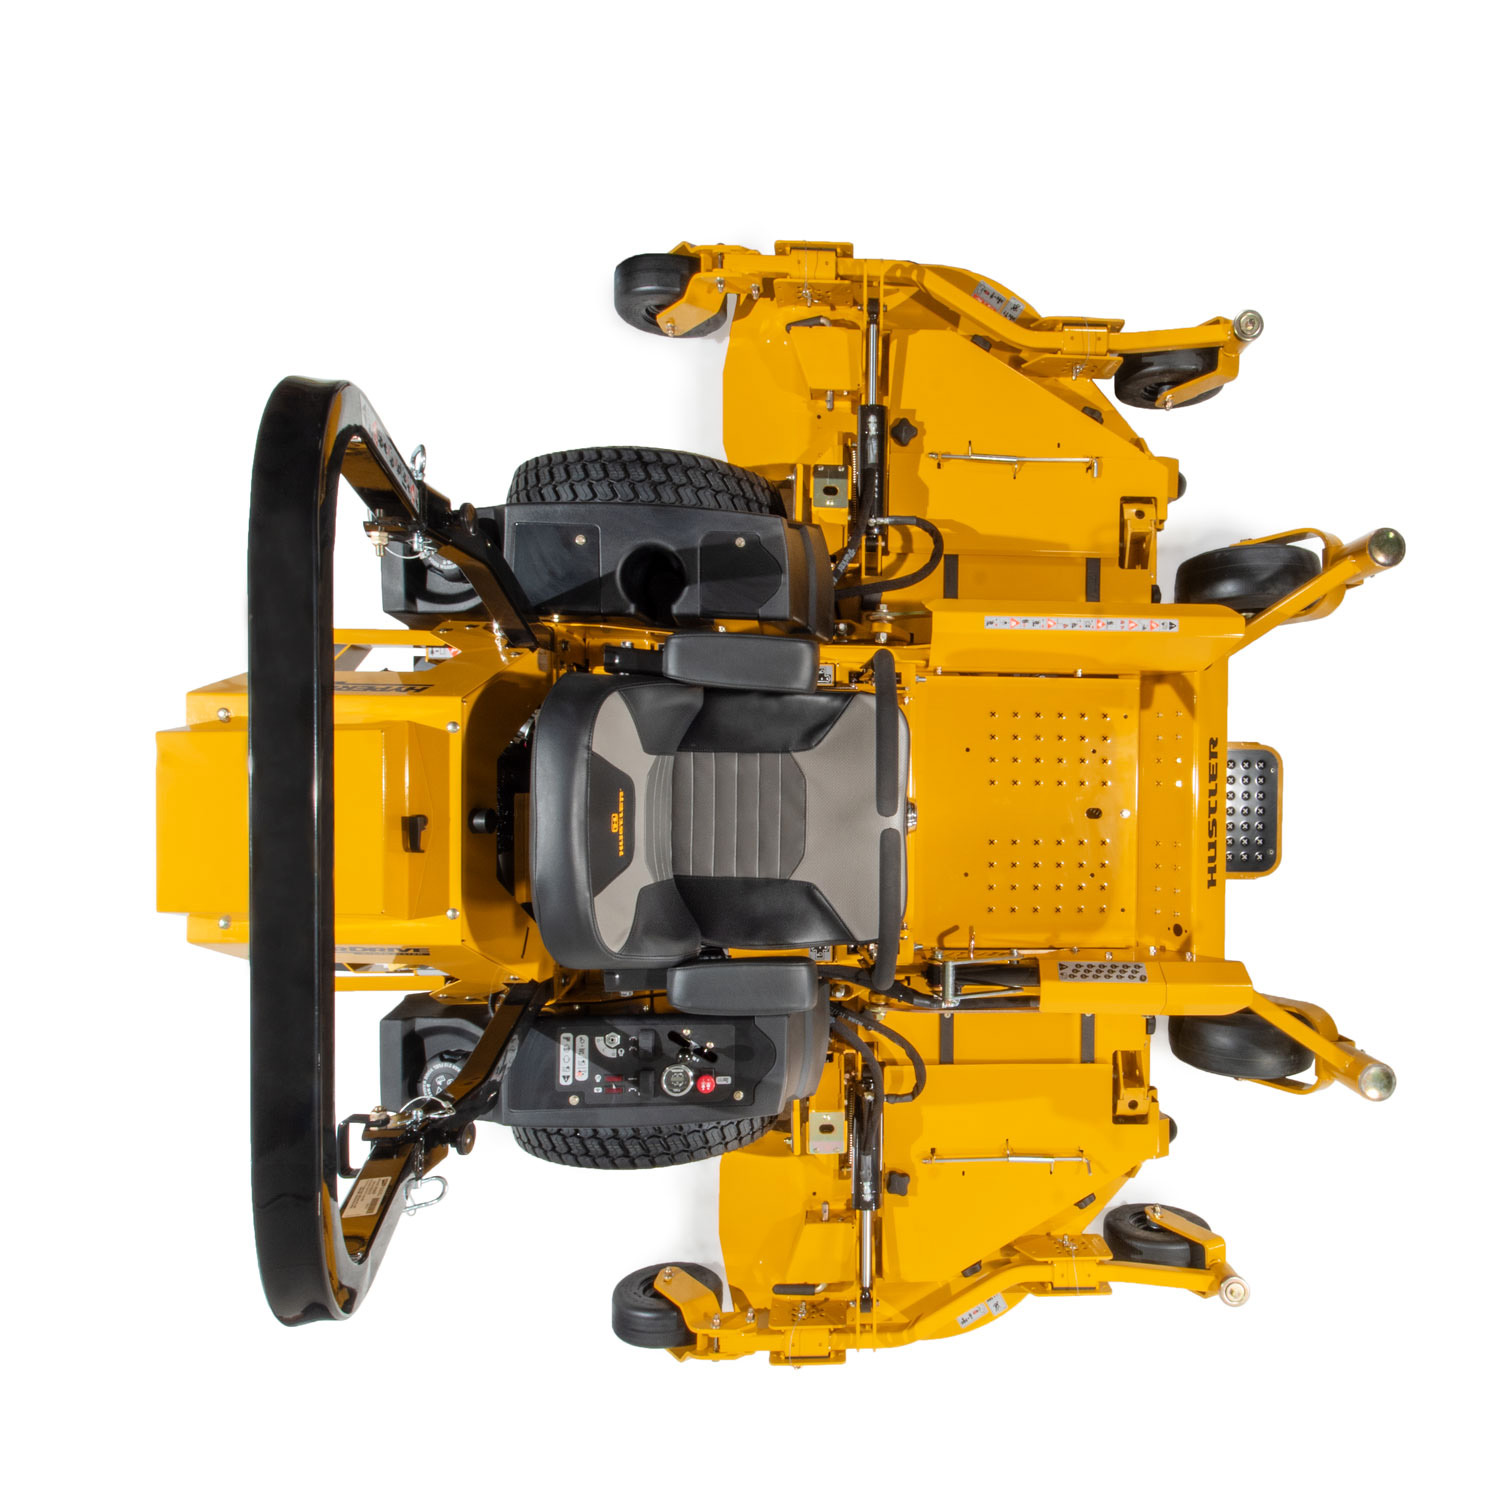 Image of a yellow zero-turn mower with wing decks attached to the main deck seen from above